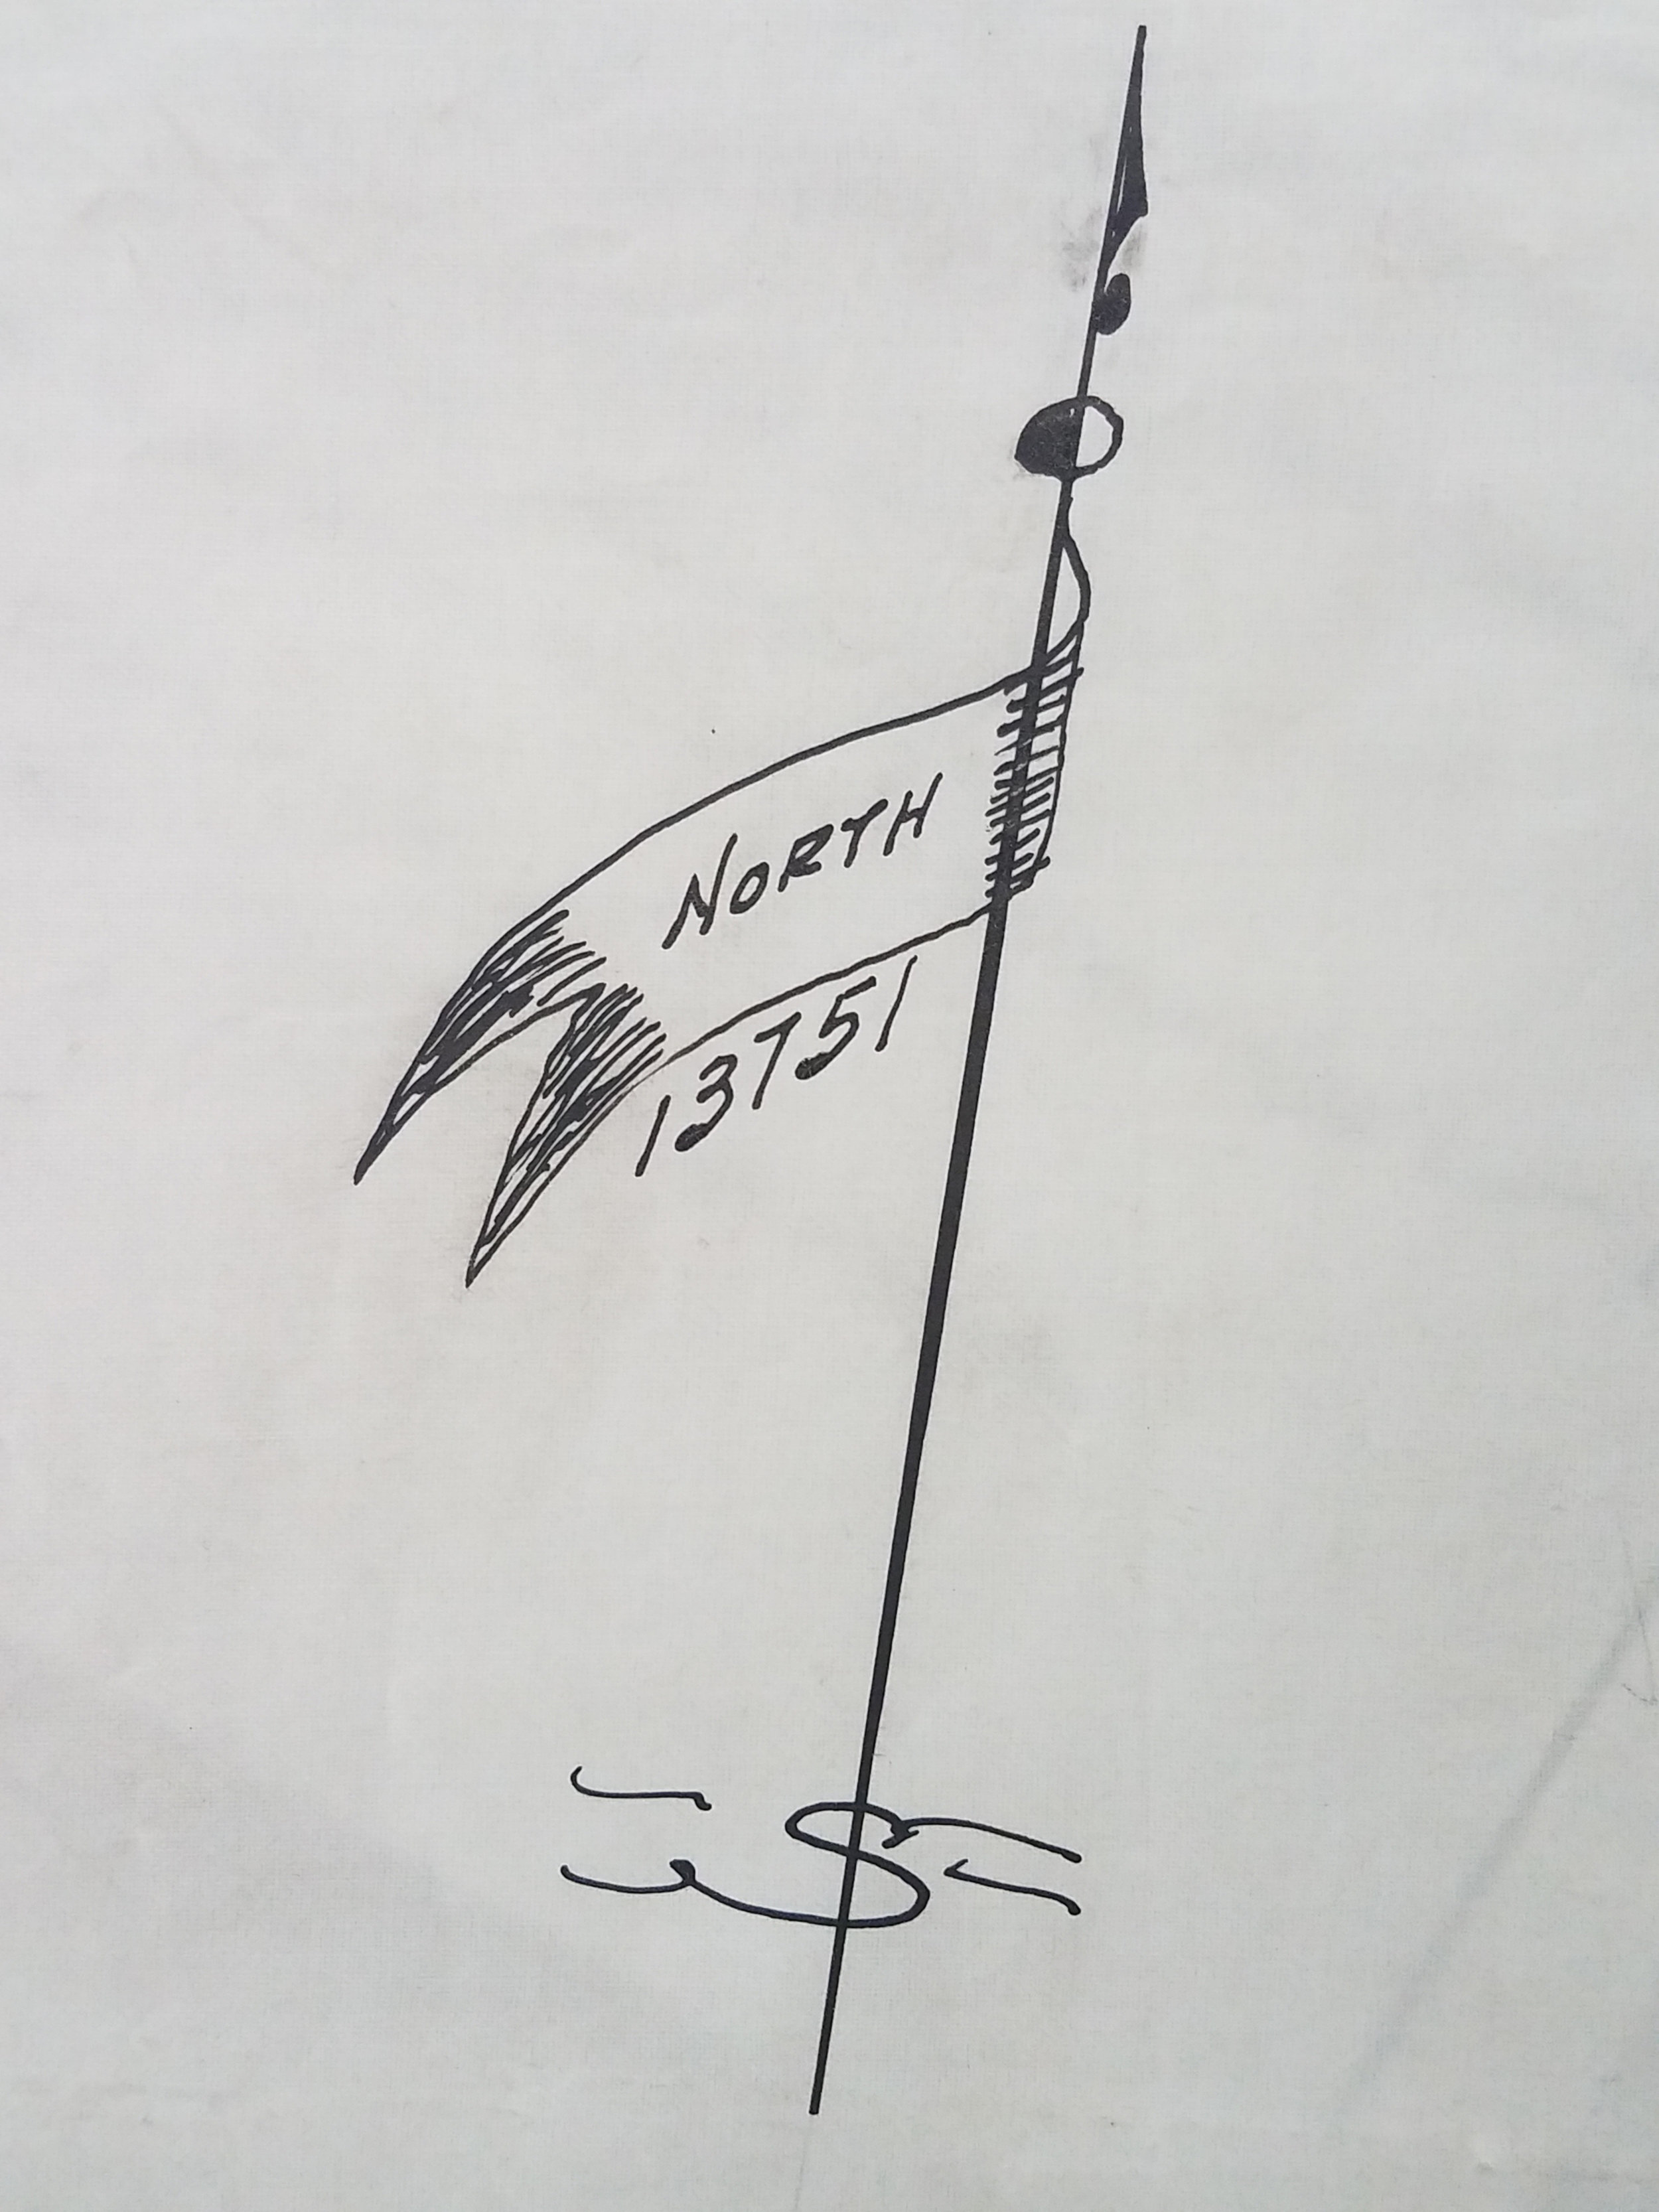 Compass rose from a Damage Map belonging to the Board of Education, 1940. From the collection of the Board of Estimate and Apportionment, NYC Municipal Archives.